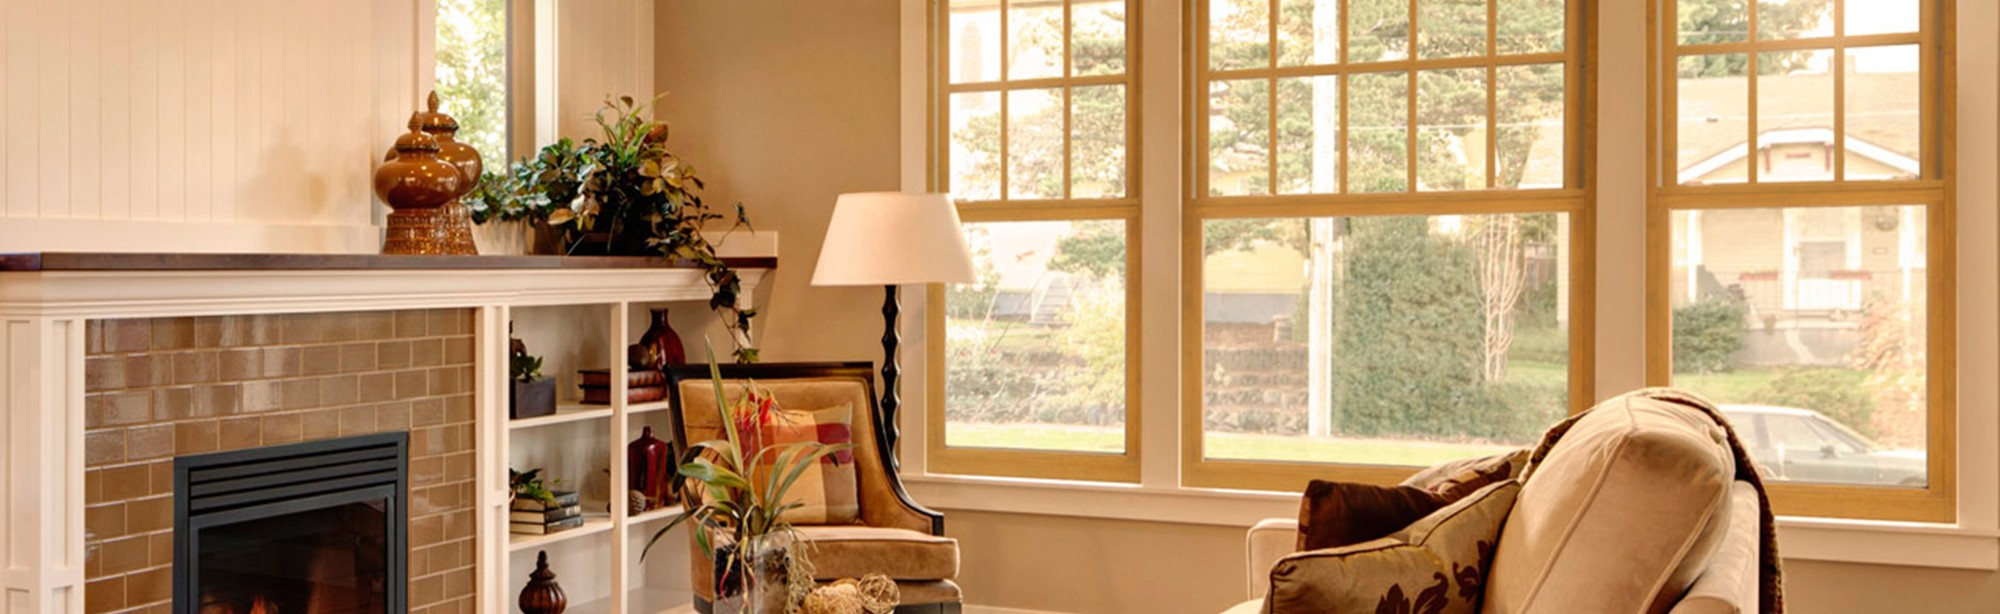 Uncategorized exterior residential windows - Bring Comfort And Convenience